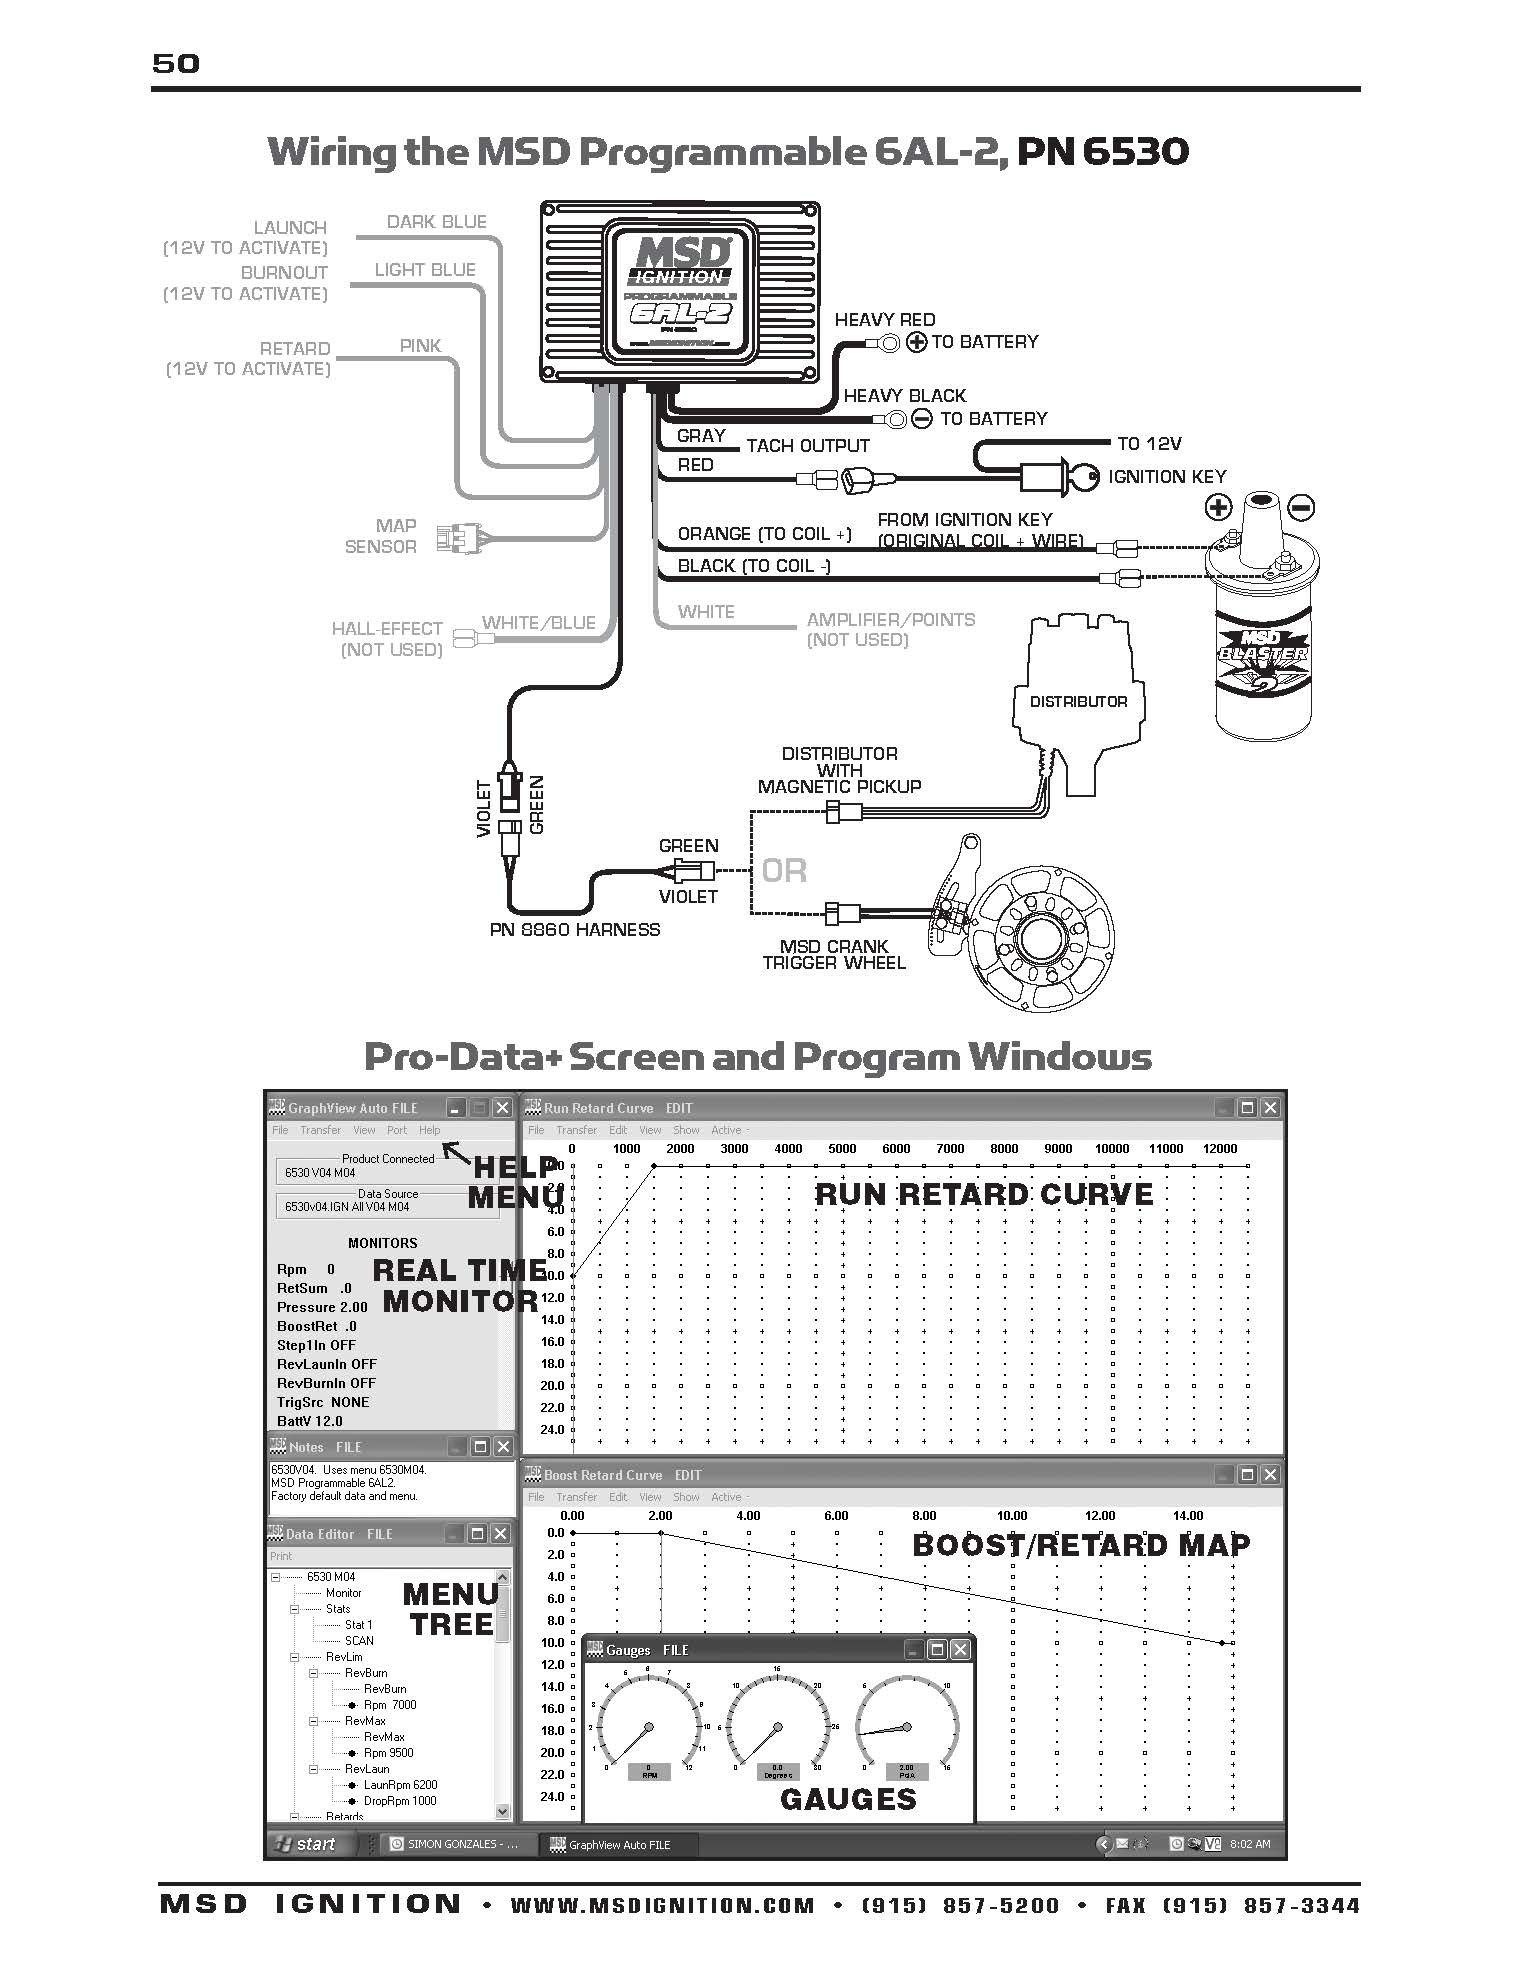 msd ignition wiring diagram 6al w two step circuit wiring and rh bdnewsmix com Mustang MSD 6AL Wiring-Diagram Mustang MSD 6AL Wiring-Diagram